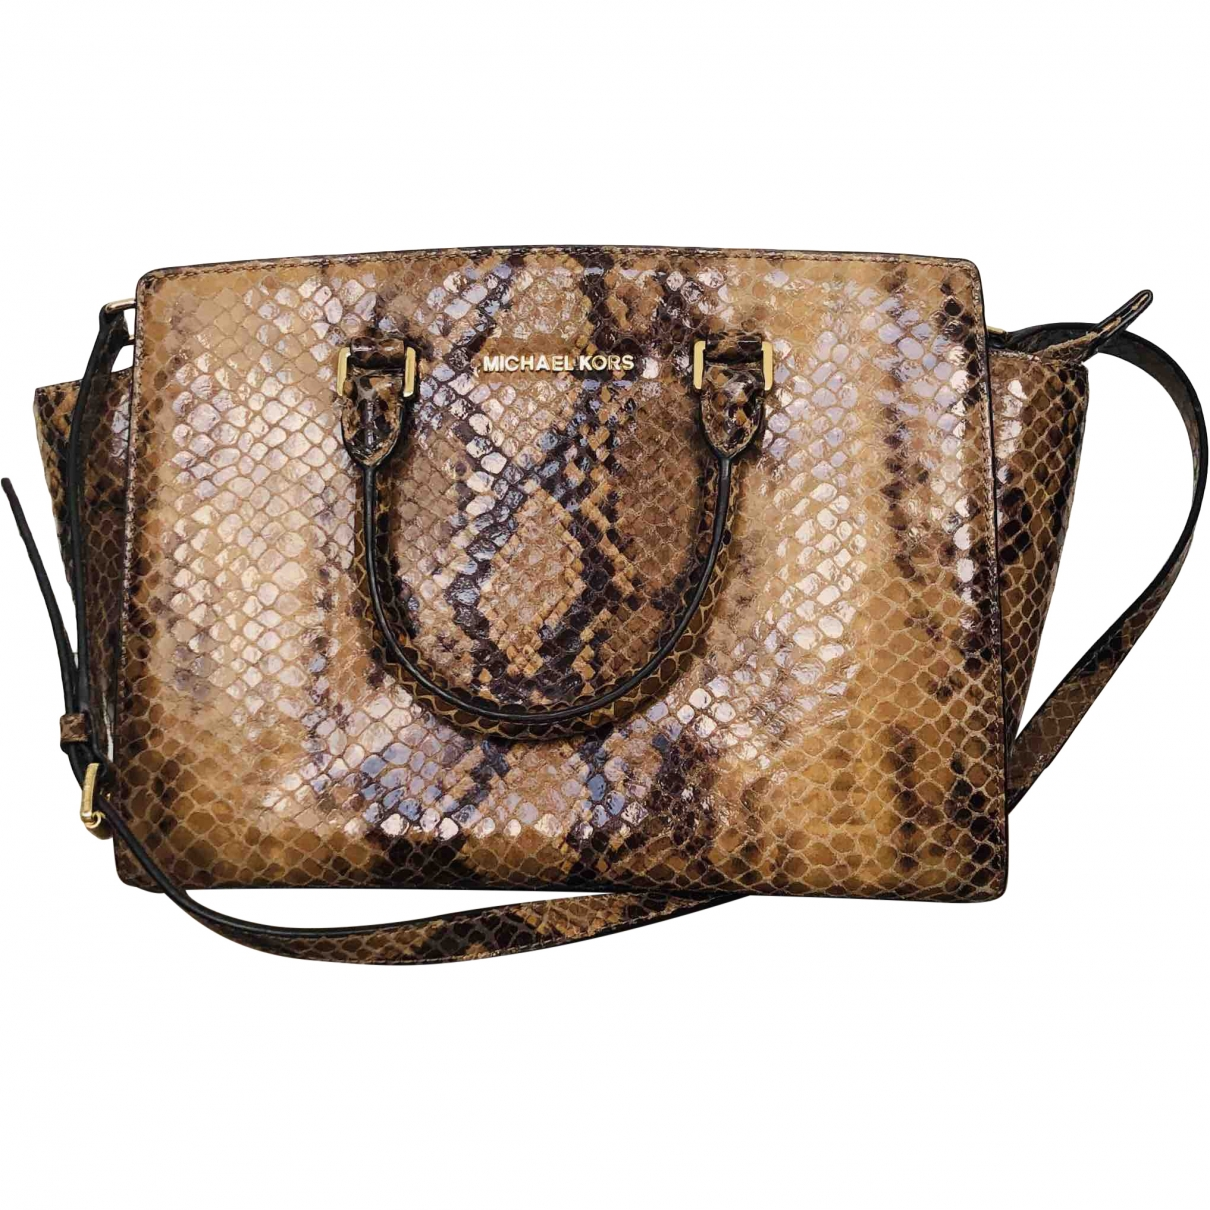 Michael Kors \N Brown handbag for Women \N